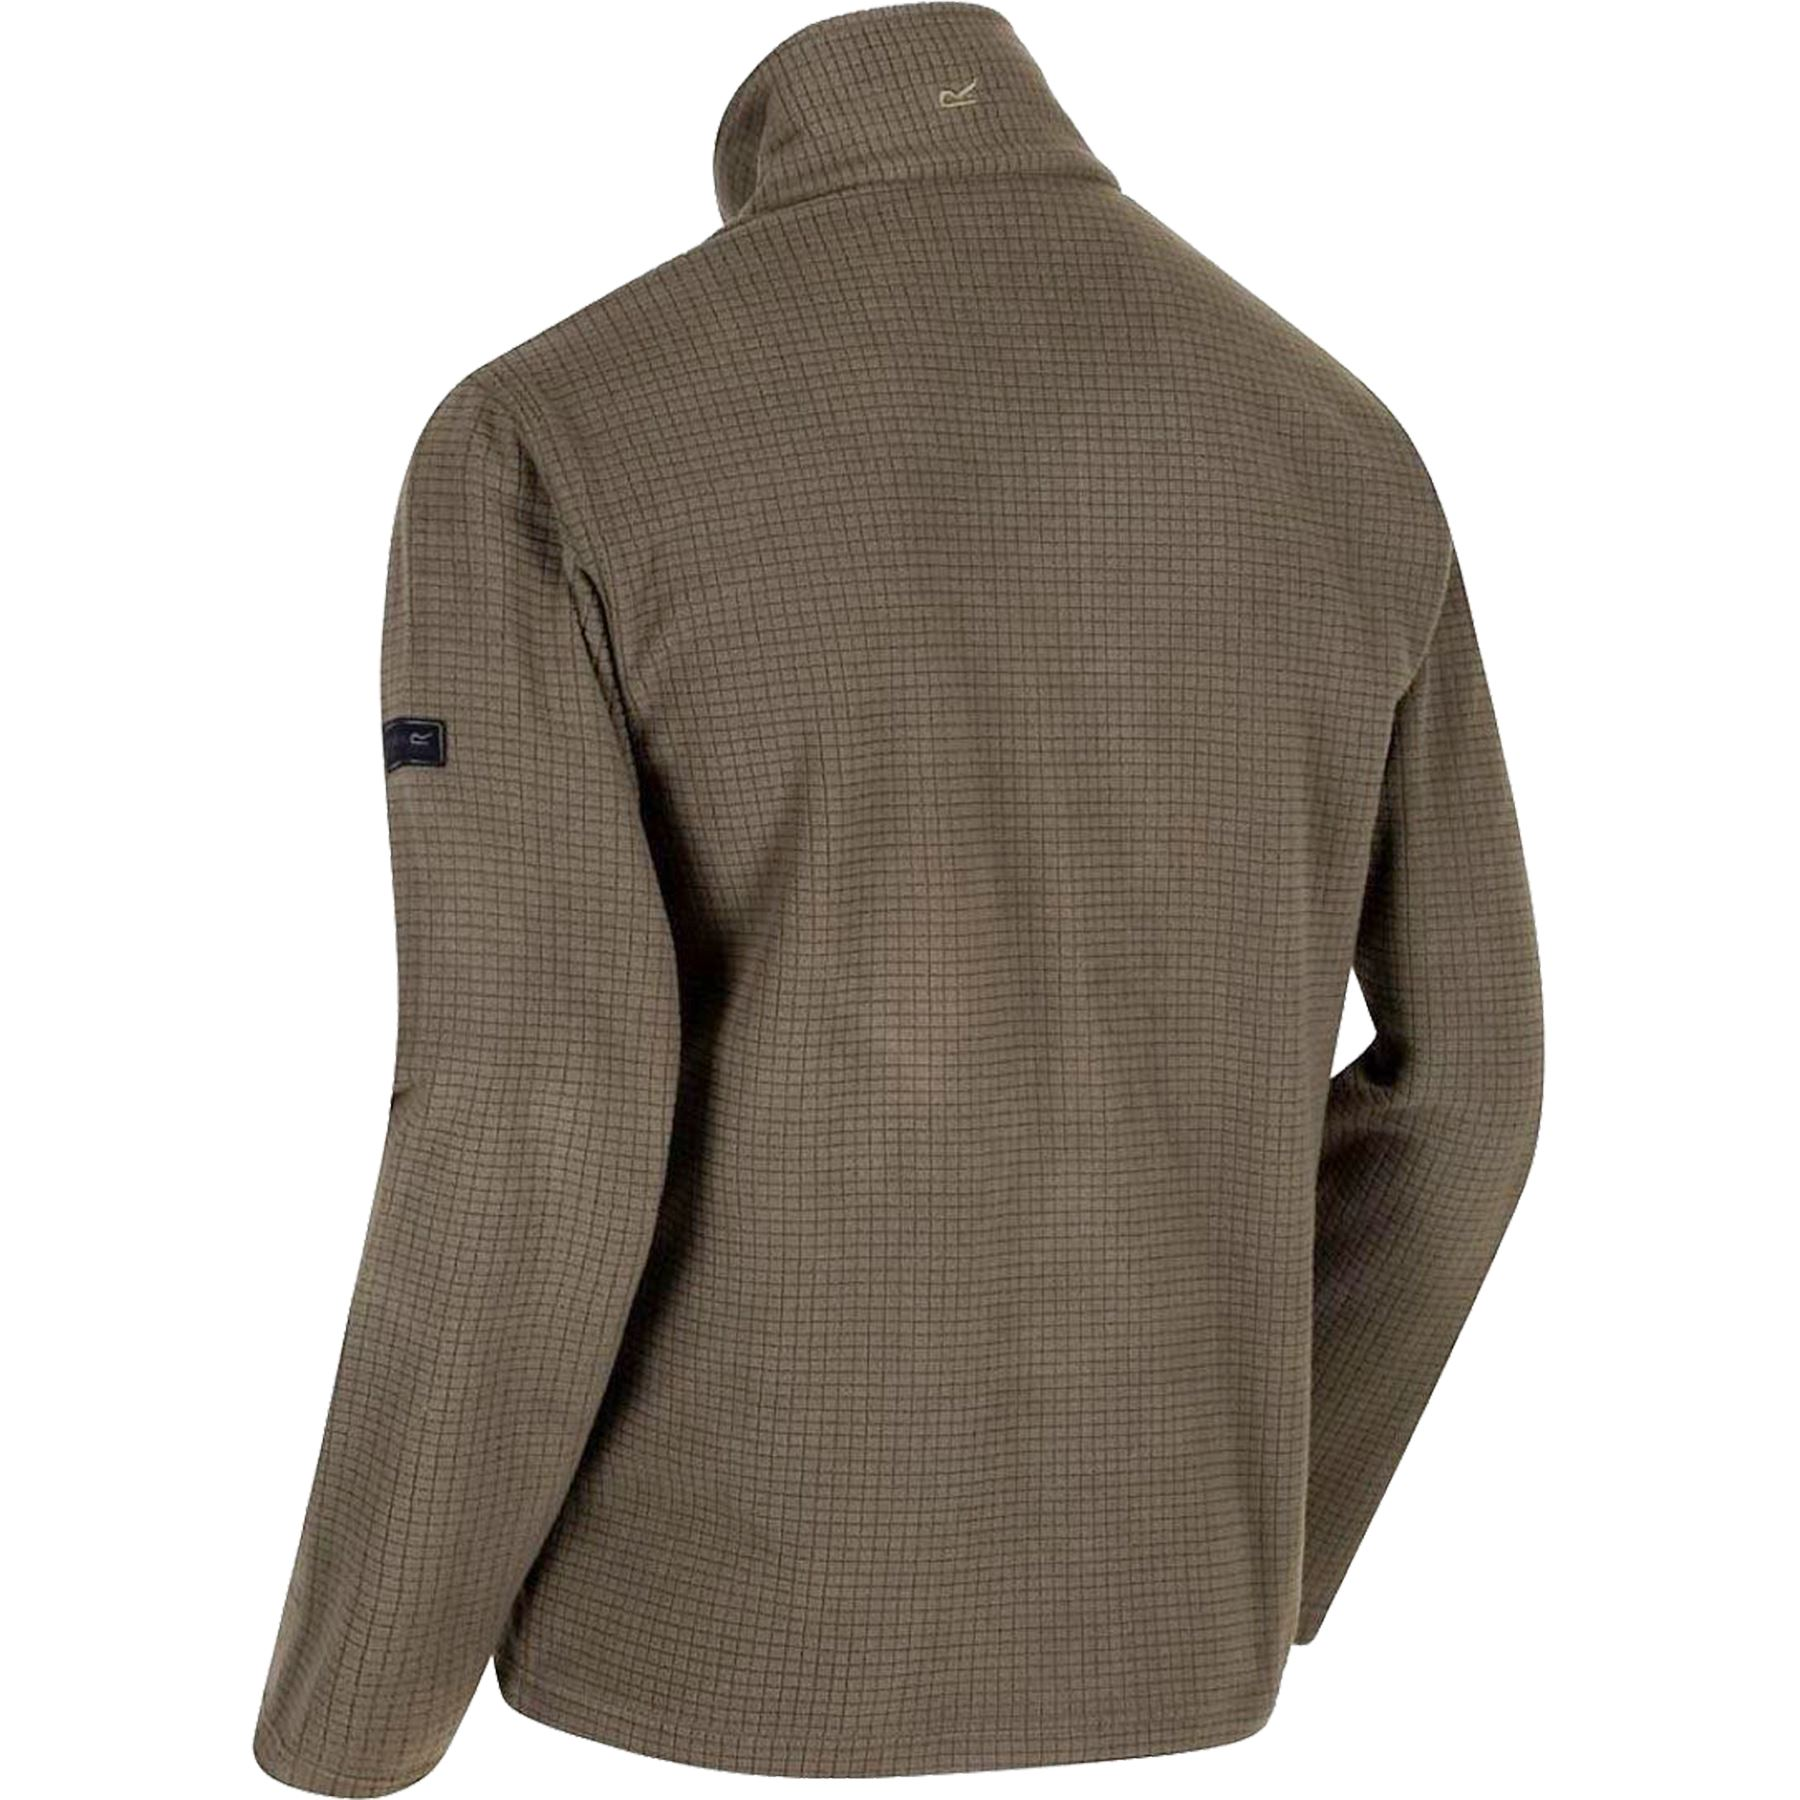 Mens-Regatta-Textured-Lightweight-Micro-Half-Zip-Fleece-Top-Jacket-Sizes-S-4XL thumbnail 9